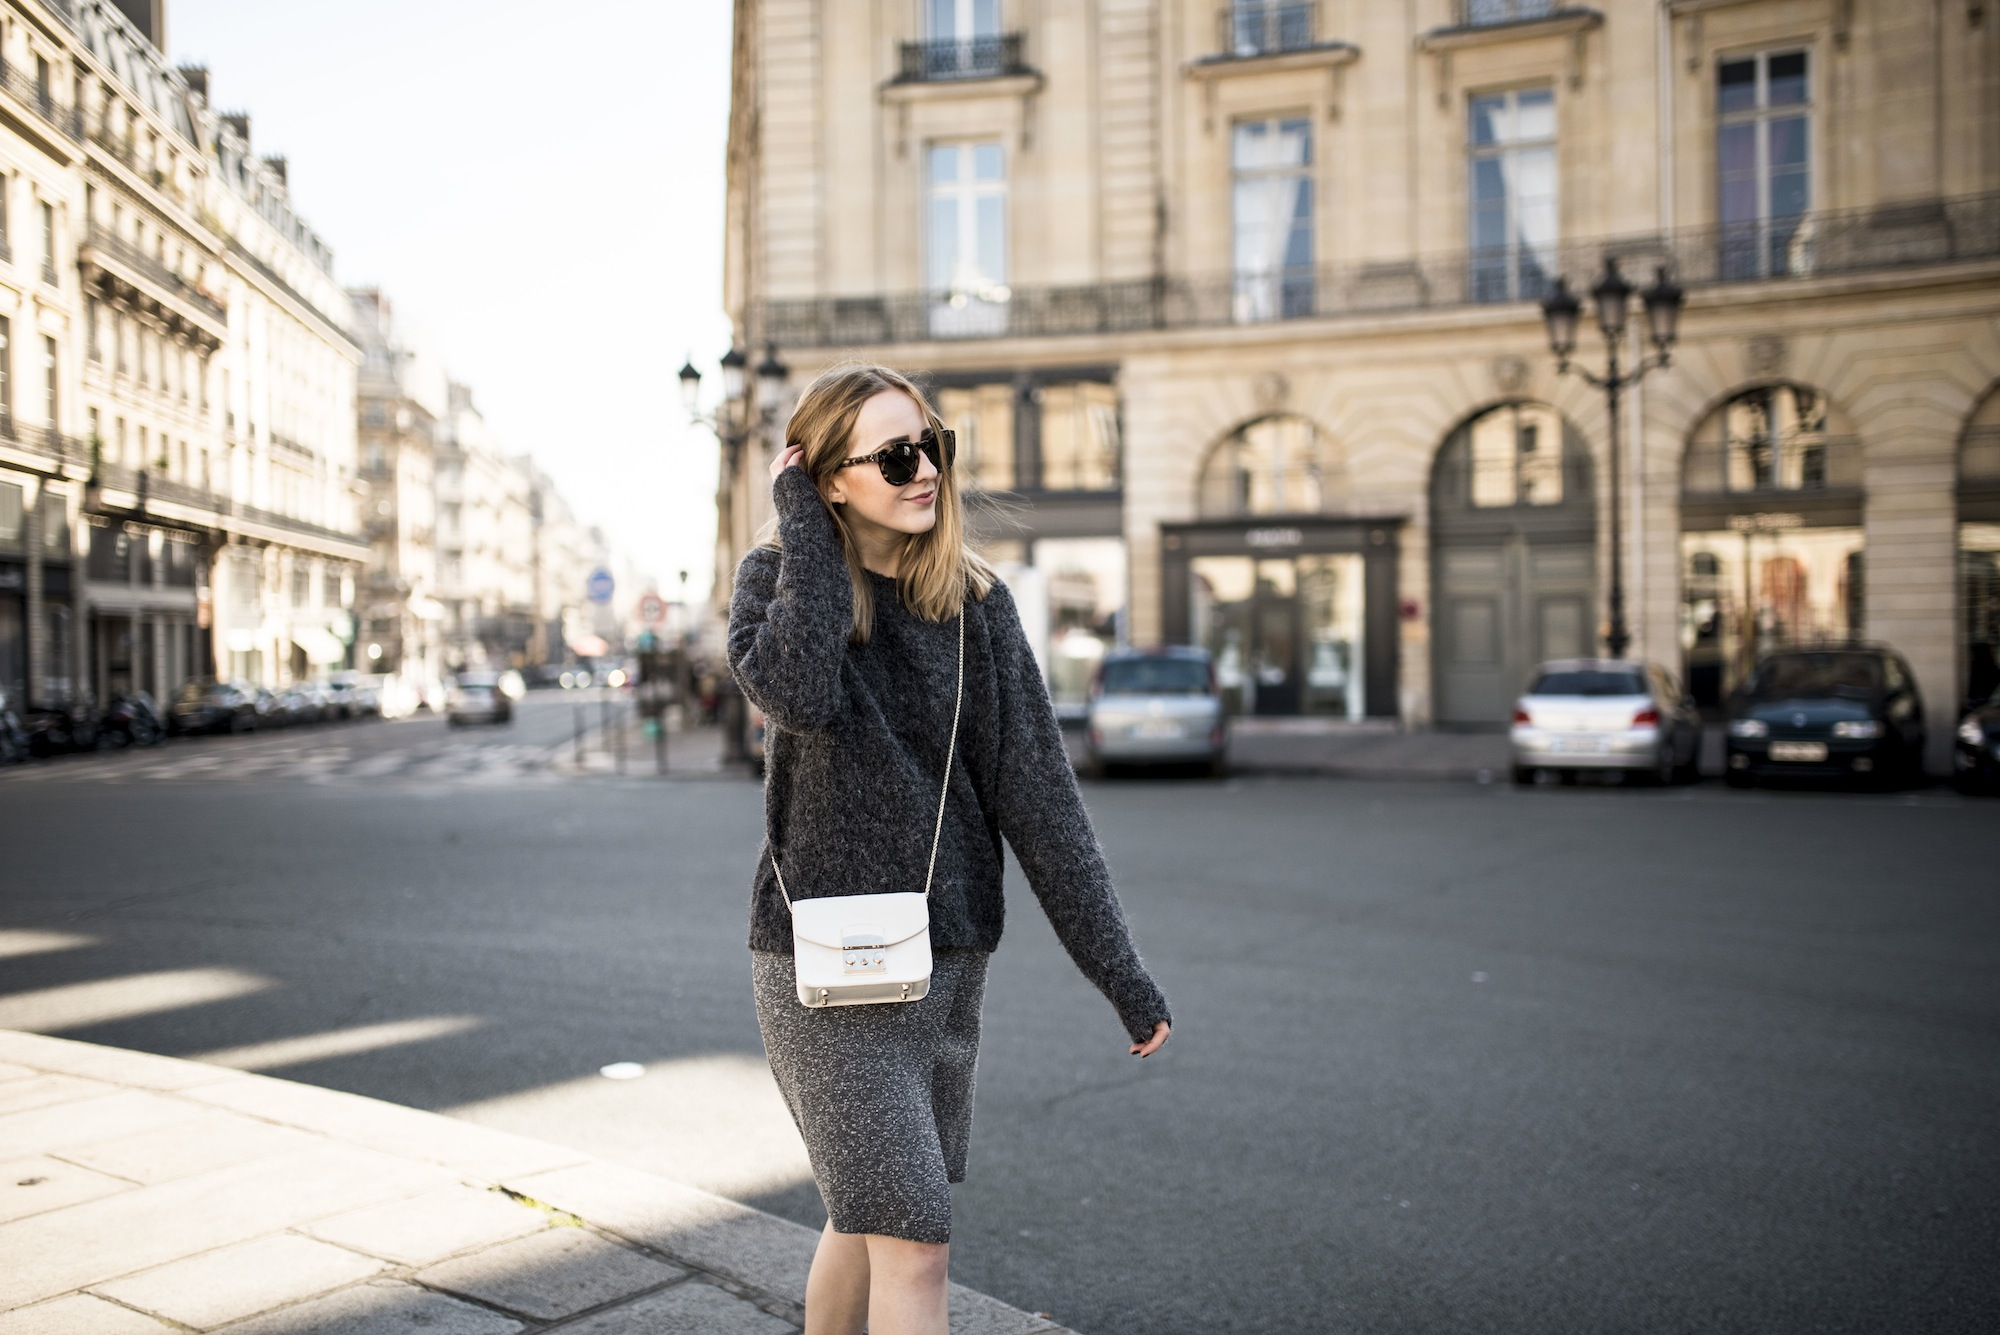 Place des victoires tiphaine marie switzerland based fashion blogger swiss fashion blog - Place des victoires metro ...